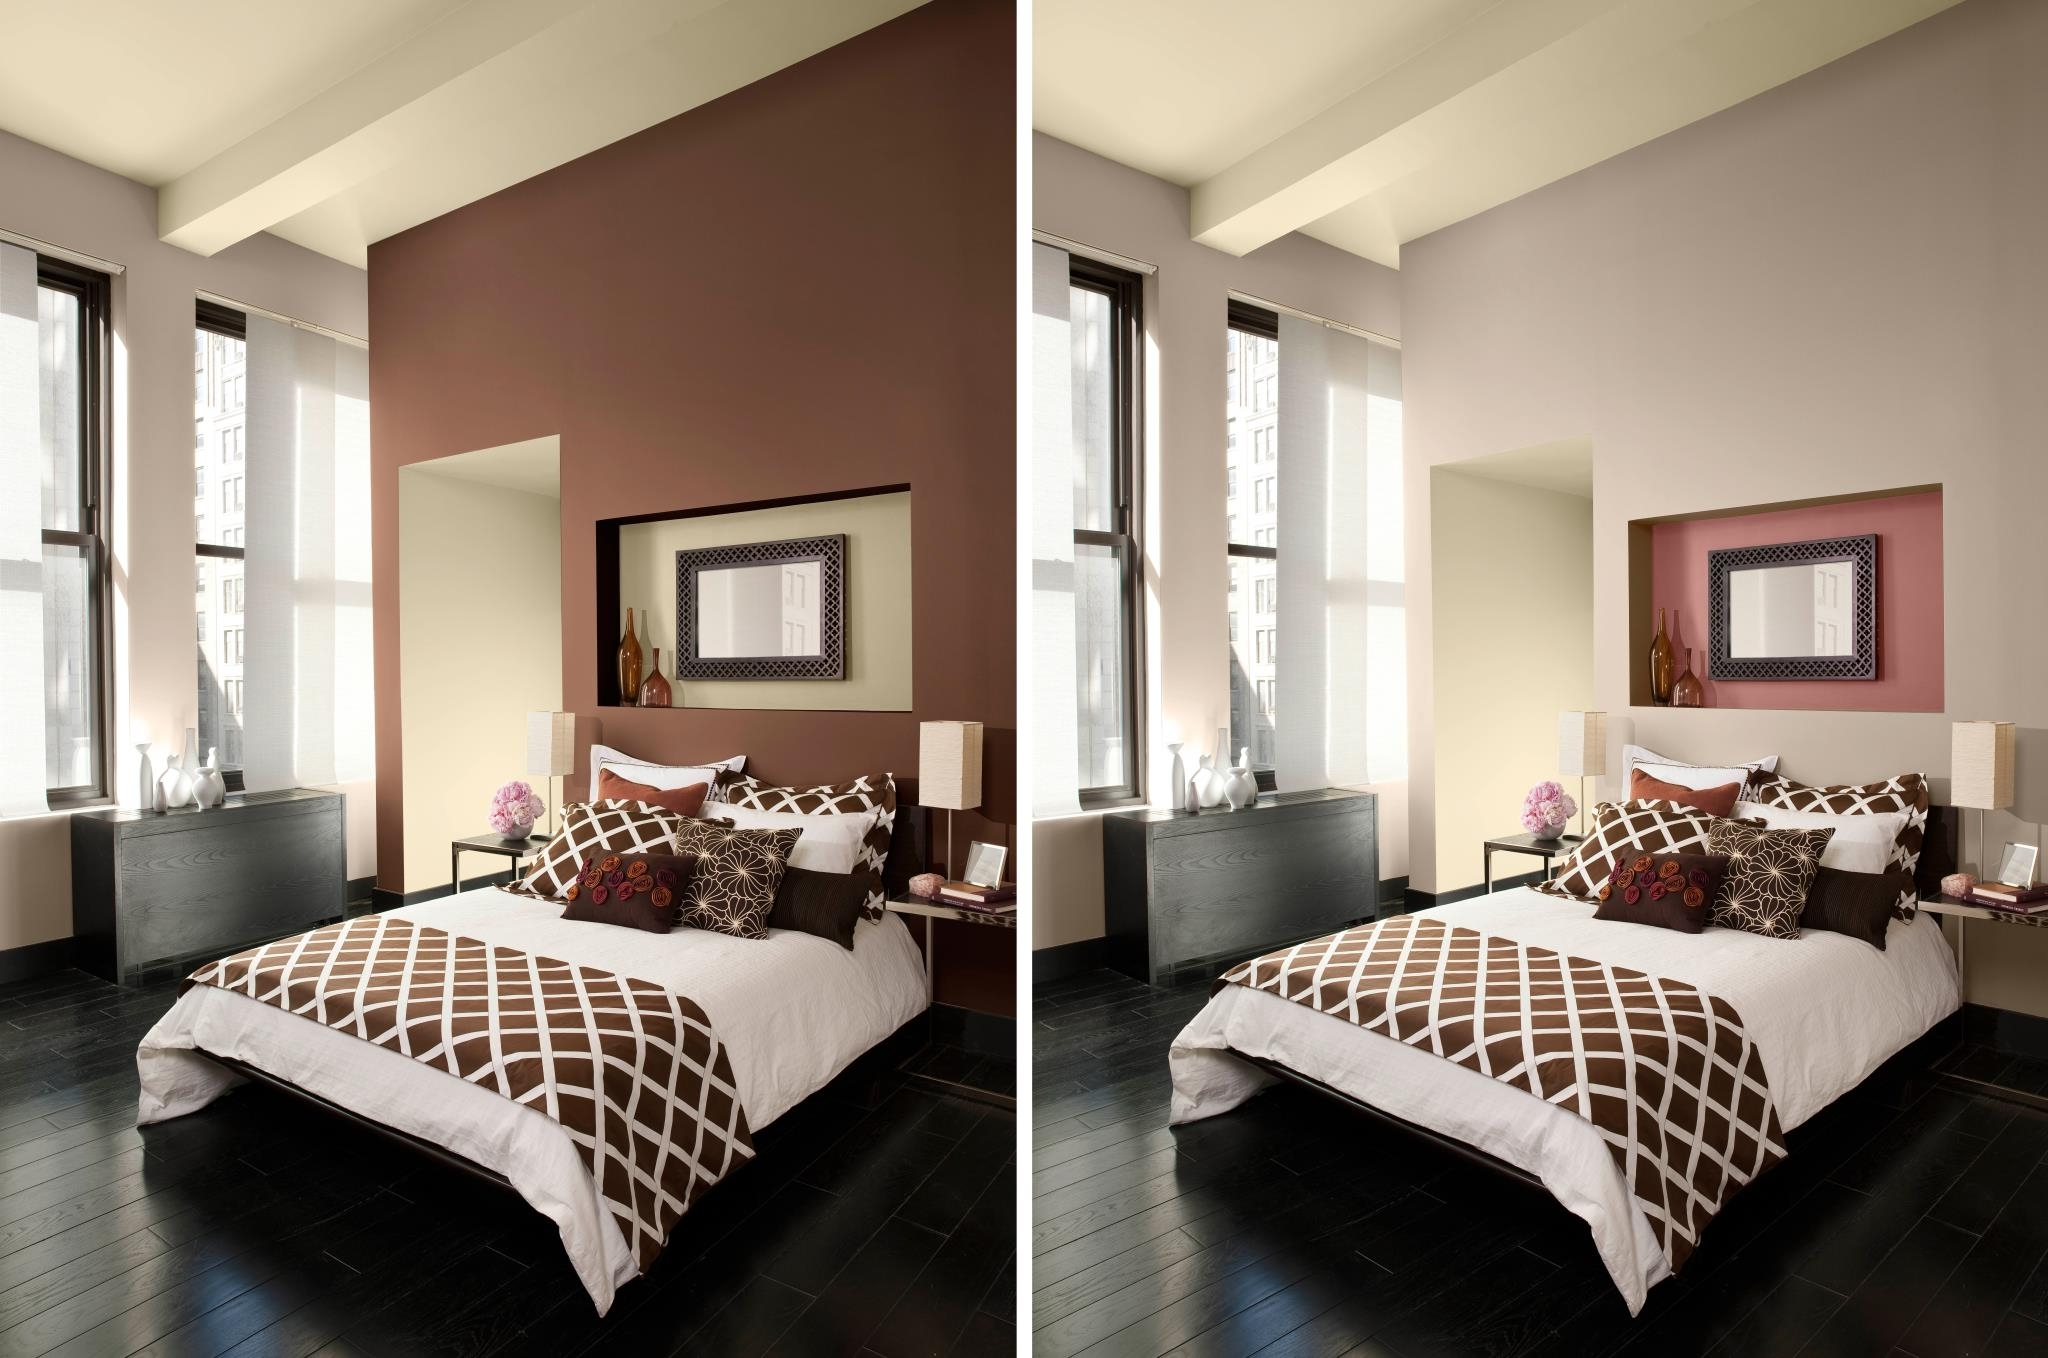 Best 15+ Of Brown Wall Accents